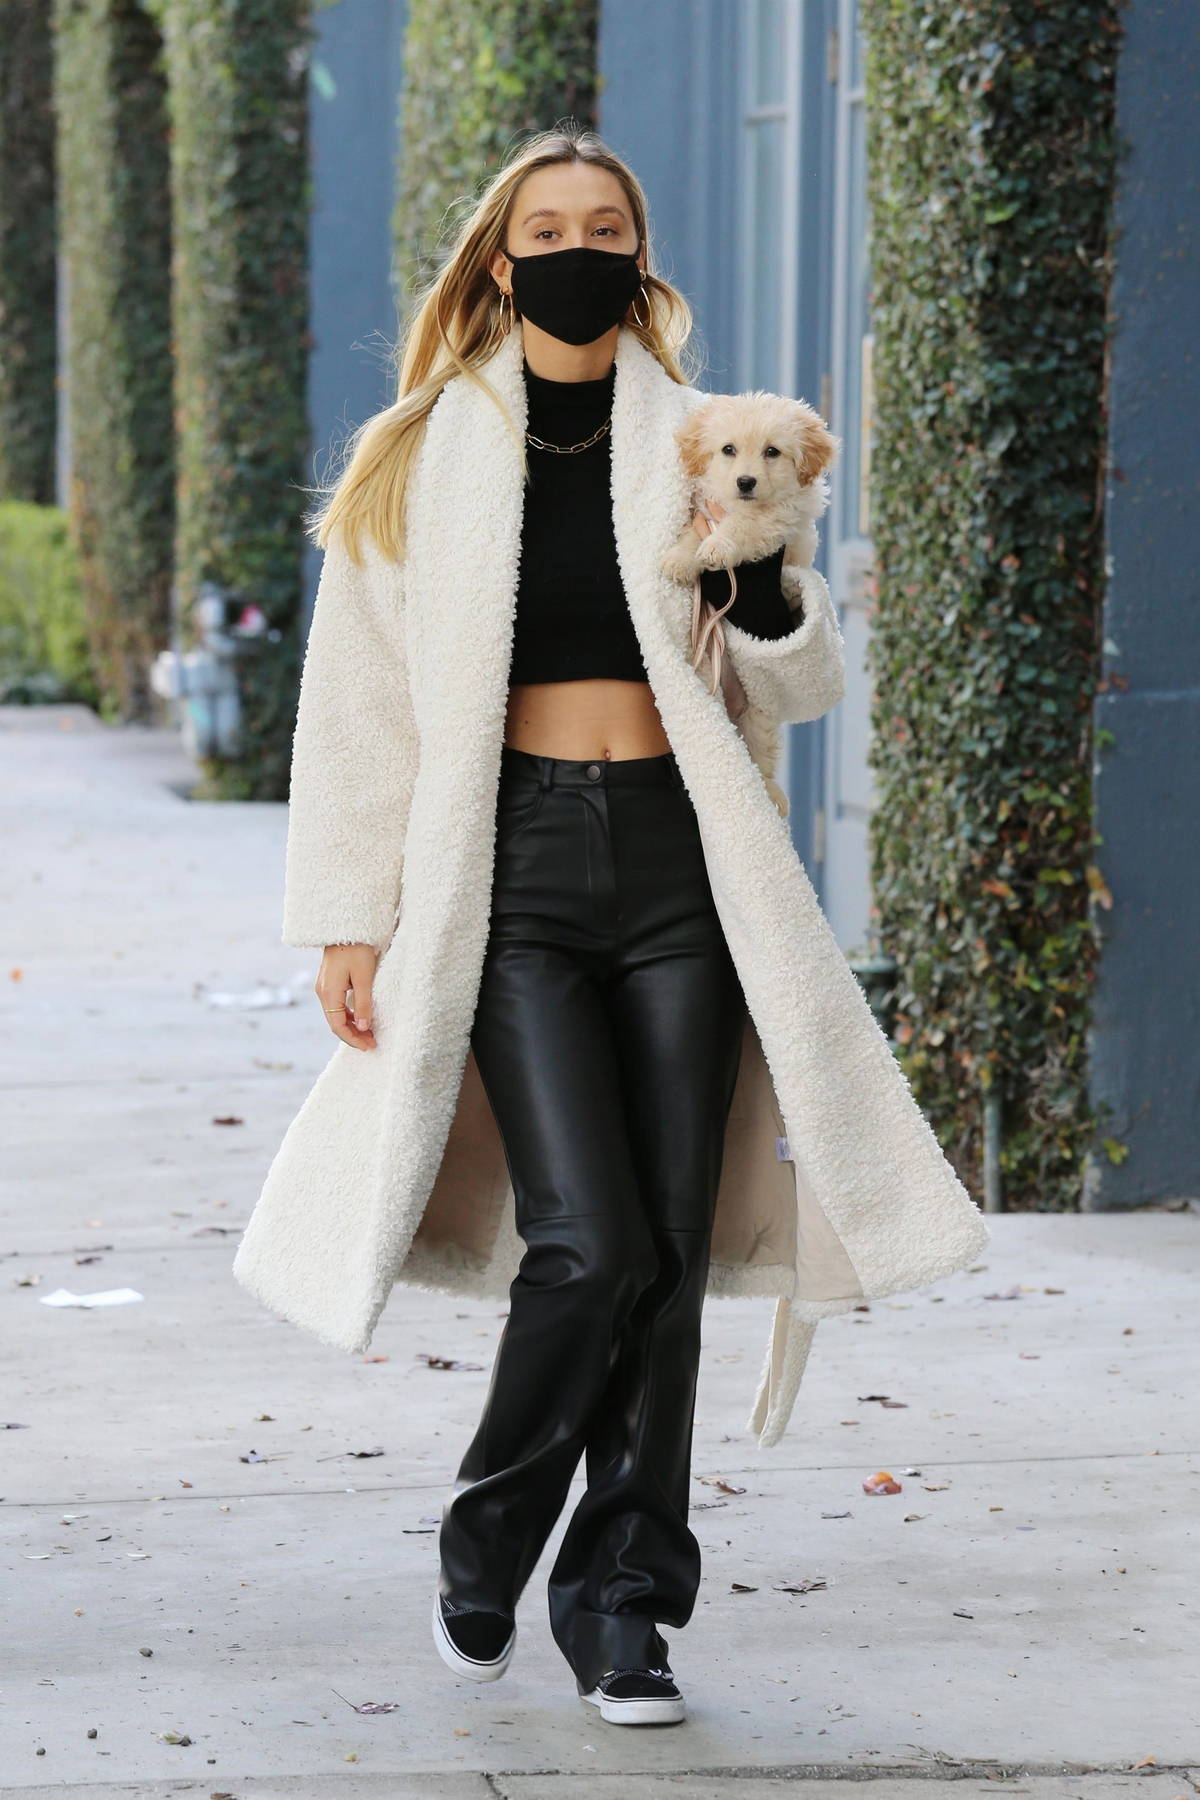 Alexis Ren flashes her perfect abs while making a coffee run with her adorable puppy at Alfred's in West Hollywood, California